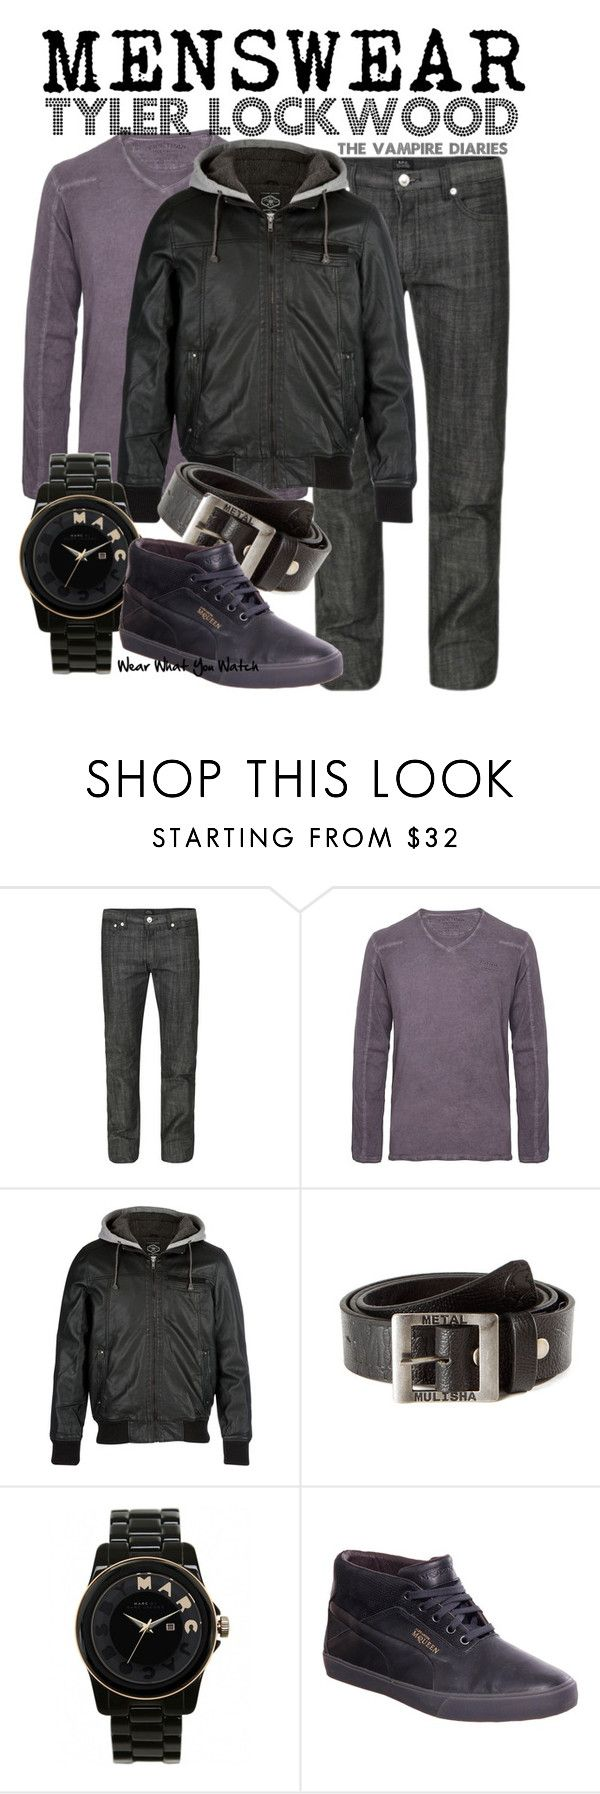 """The Vampire Diaries"" by wearwhatyouwatch ❤ liked on Polyvore featuring A.P.C., Firetrap, Metal Mulisha, Marc by Marc Jacobs, Puma, bomber jackets, oversized watches, michael trevino, loose denim and menswear inspired"